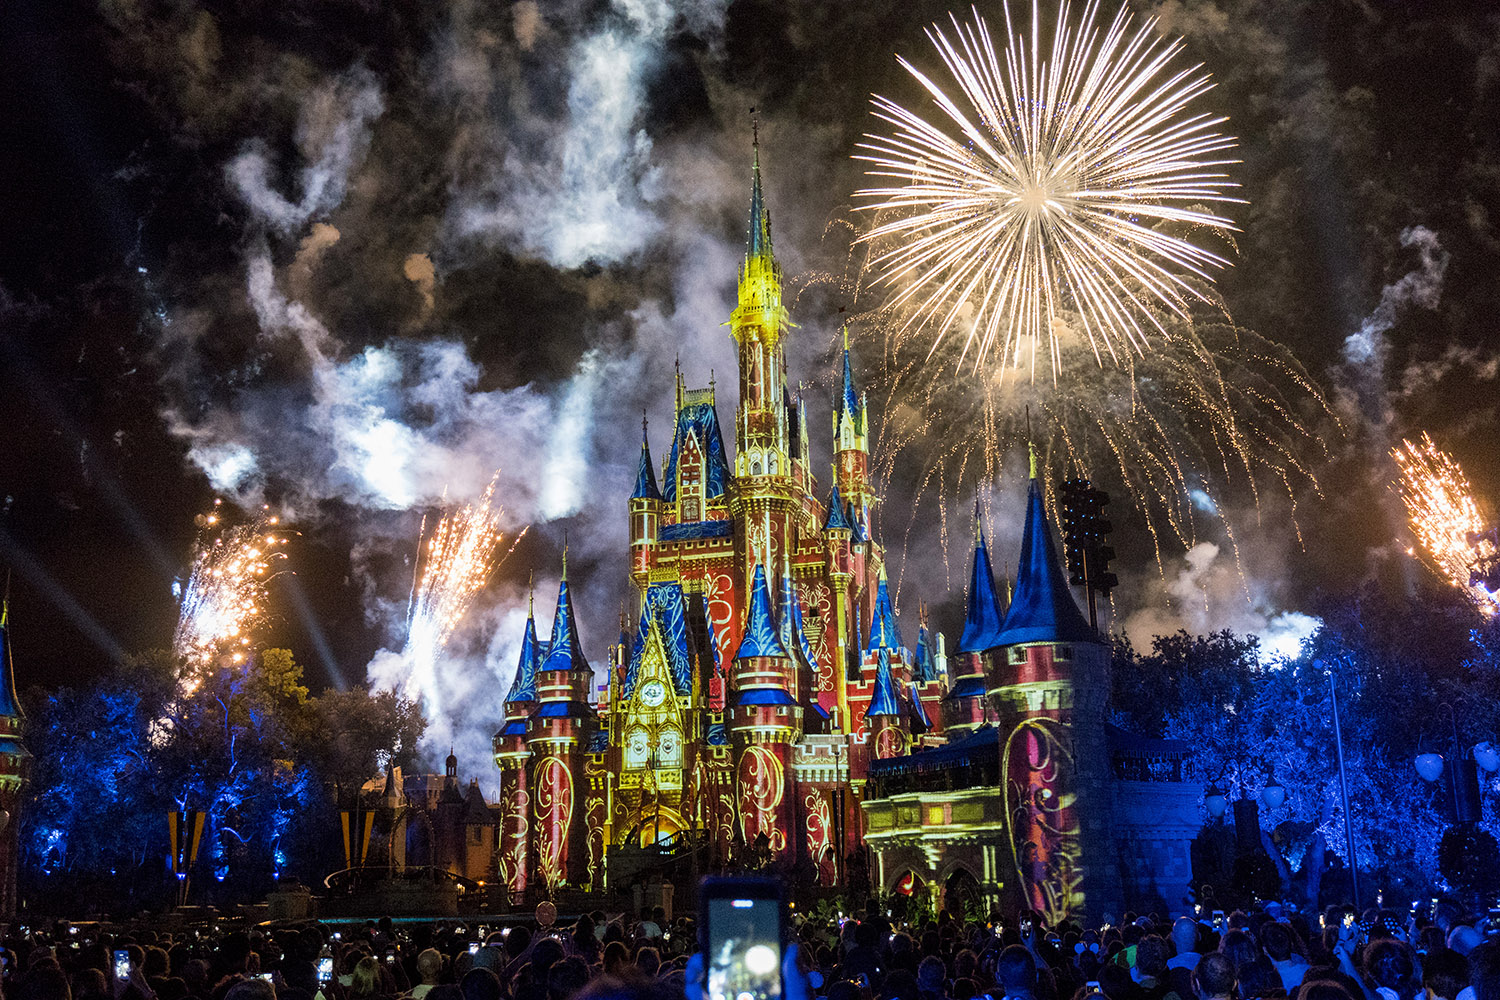 Disney - Happily Ever After